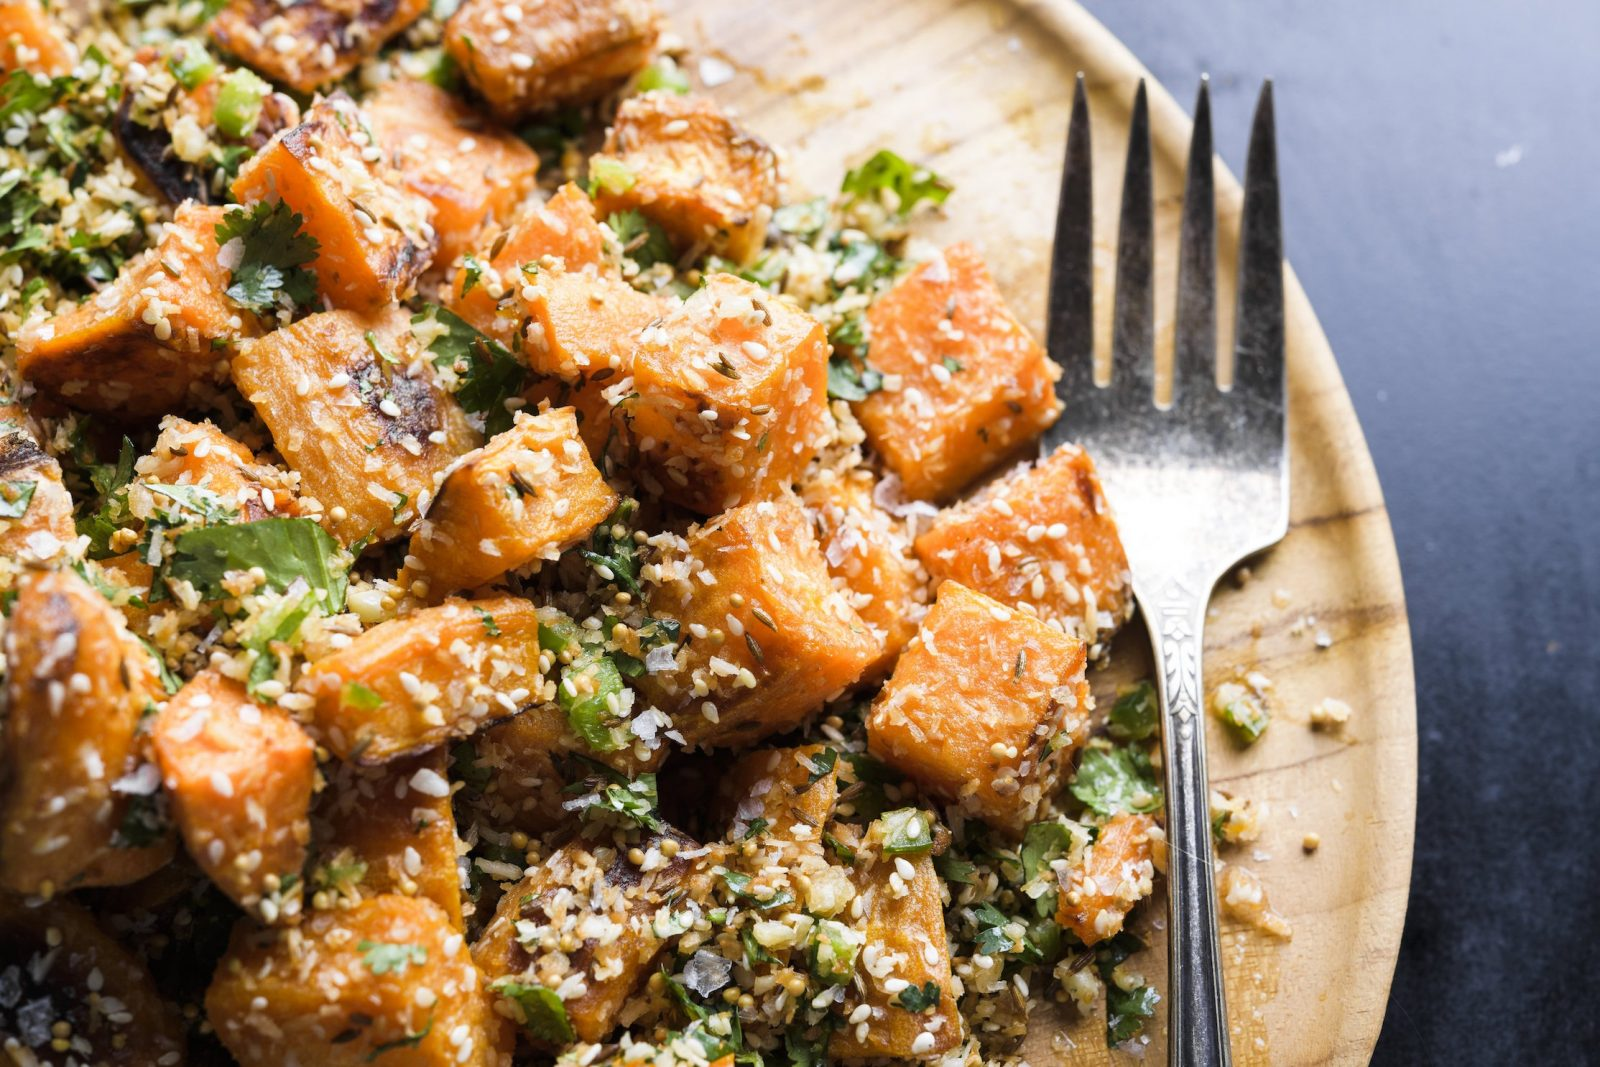 Roasted Sweet Potatoes with Toasted Spices and Cilantro (Sabzi)